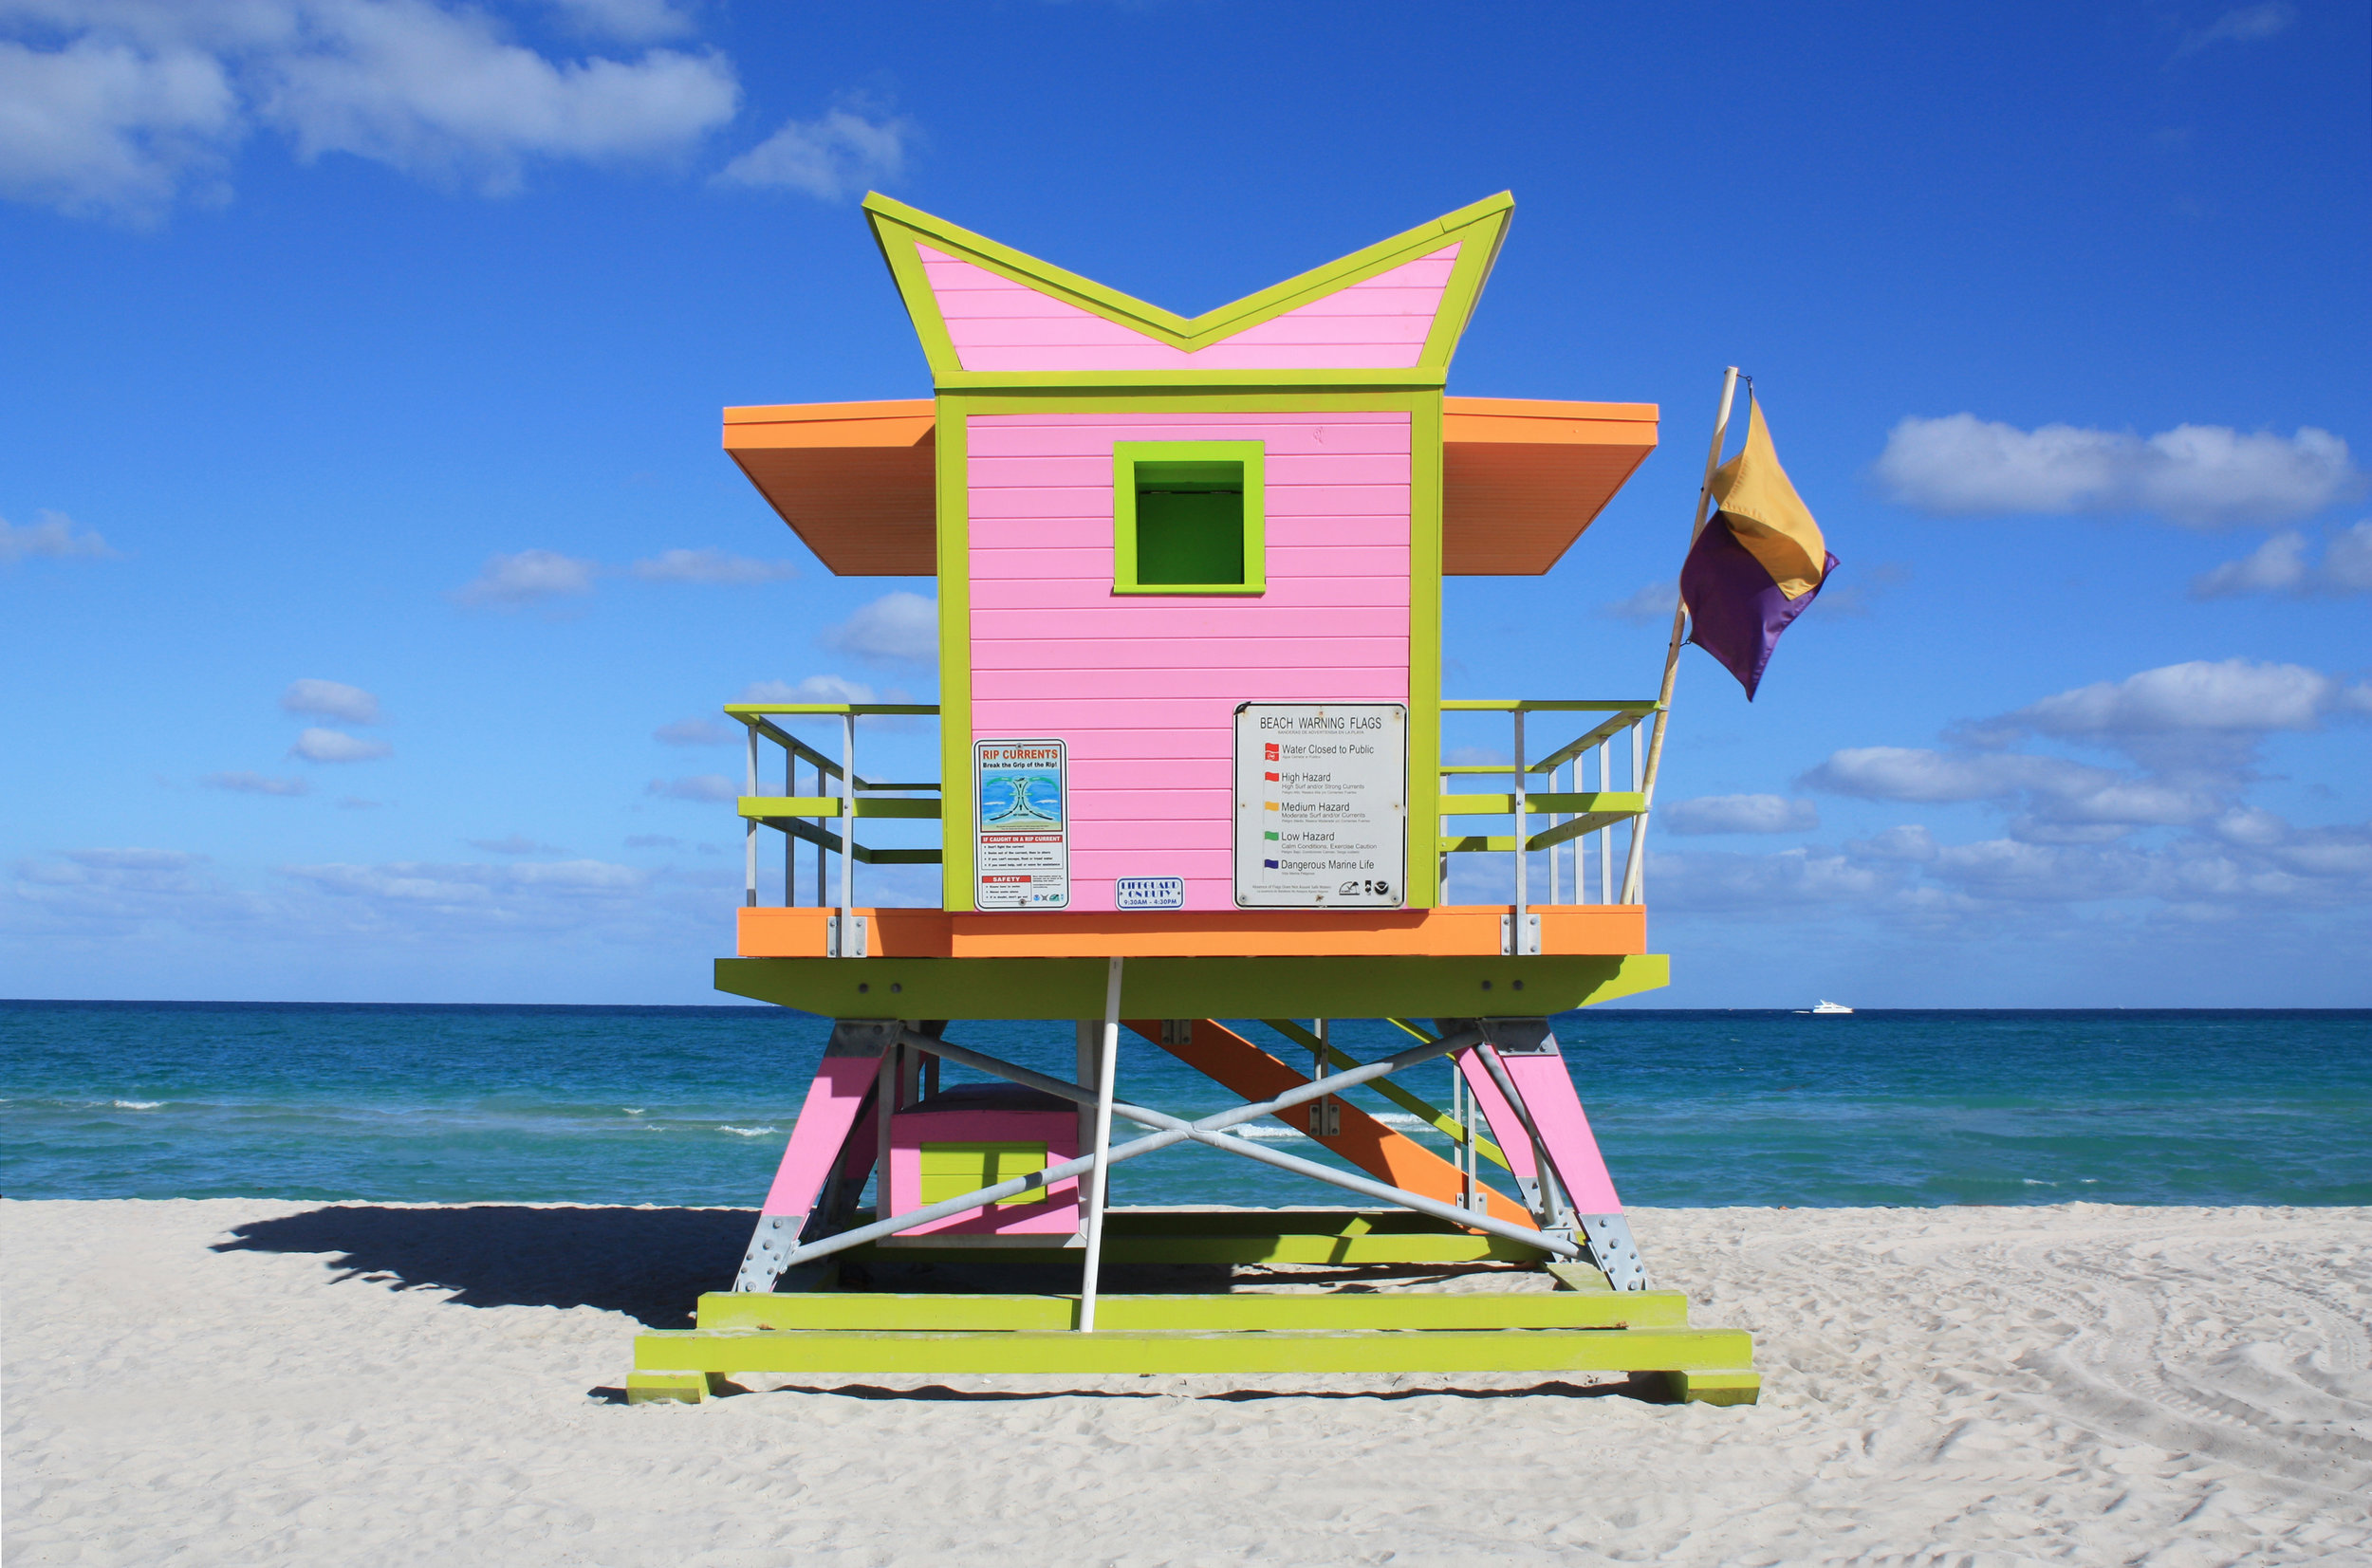 CITY OF MIAMI BEACH LIFE GUARD TOWERS